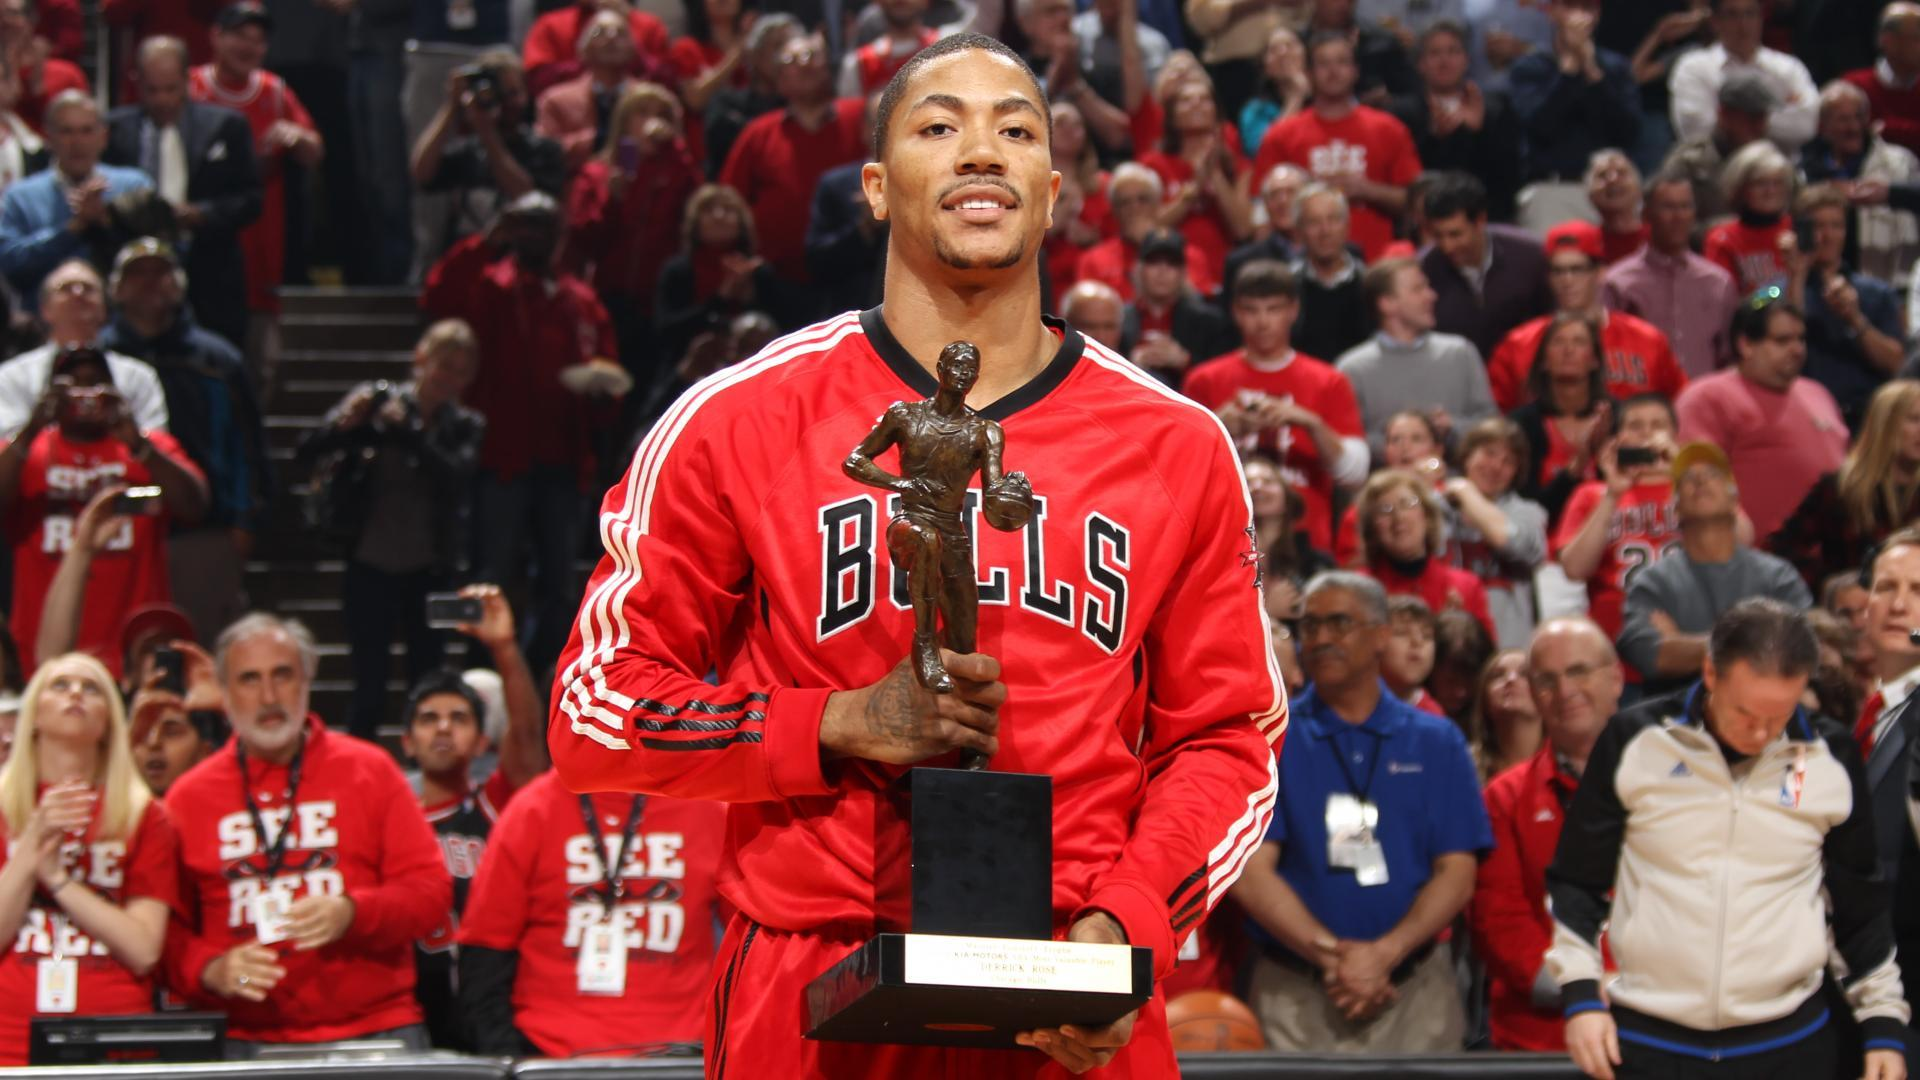 Top Moments: Derrick Rose becomes youngest player to win MVP